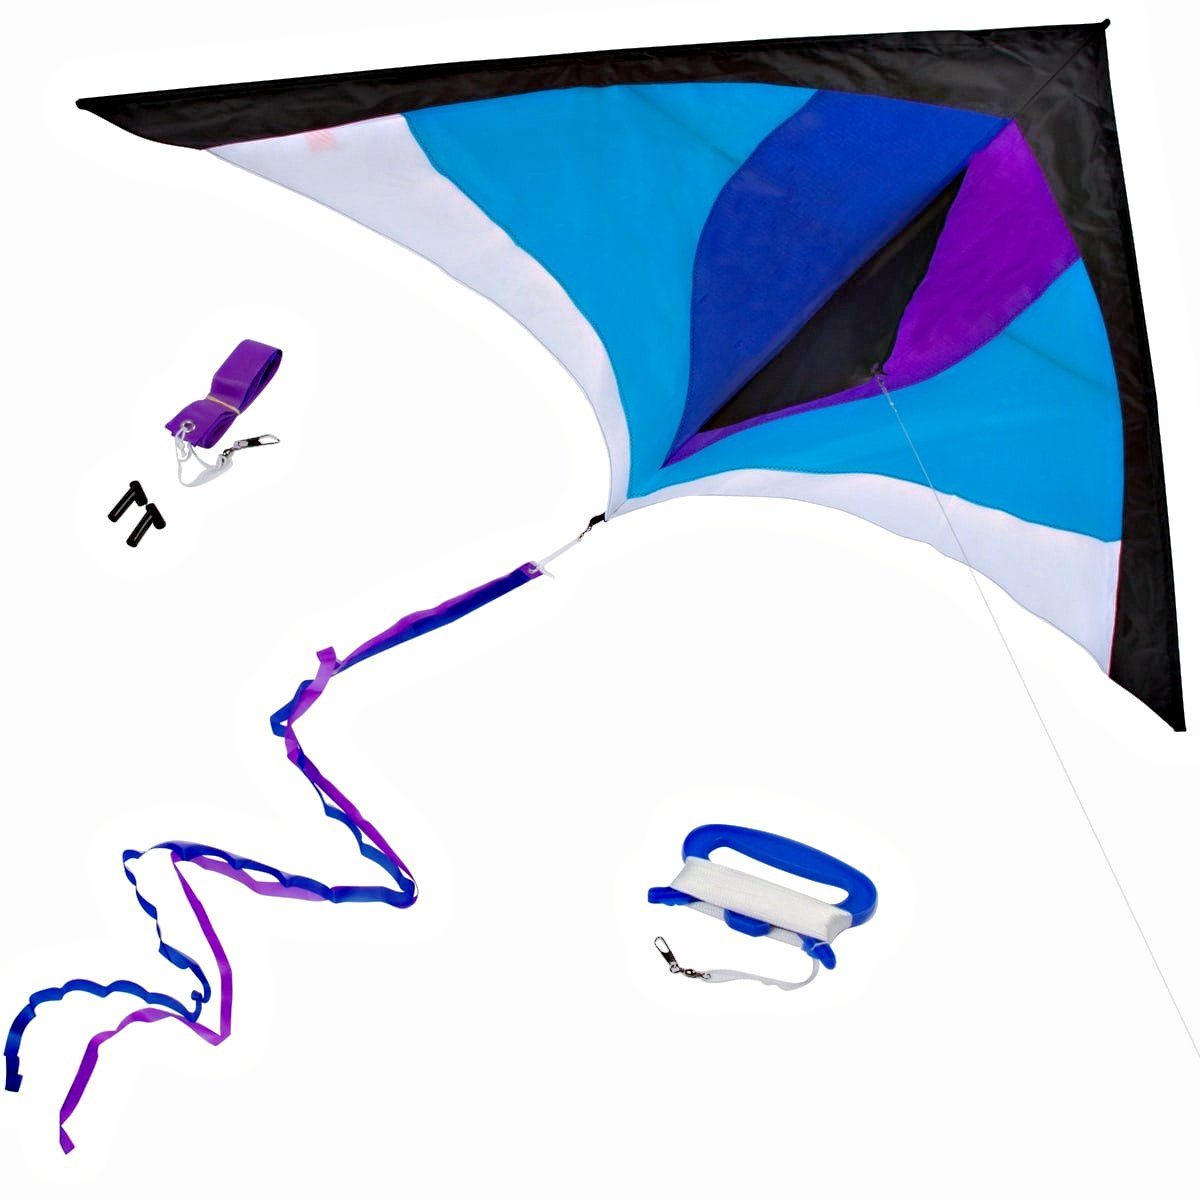 Best Delta Kite Easy Fly for Kids and Beginners Single Line w Tail Ribbons Stunning Colors Large Meticulously Designed and Tested Guarantee Bonuses